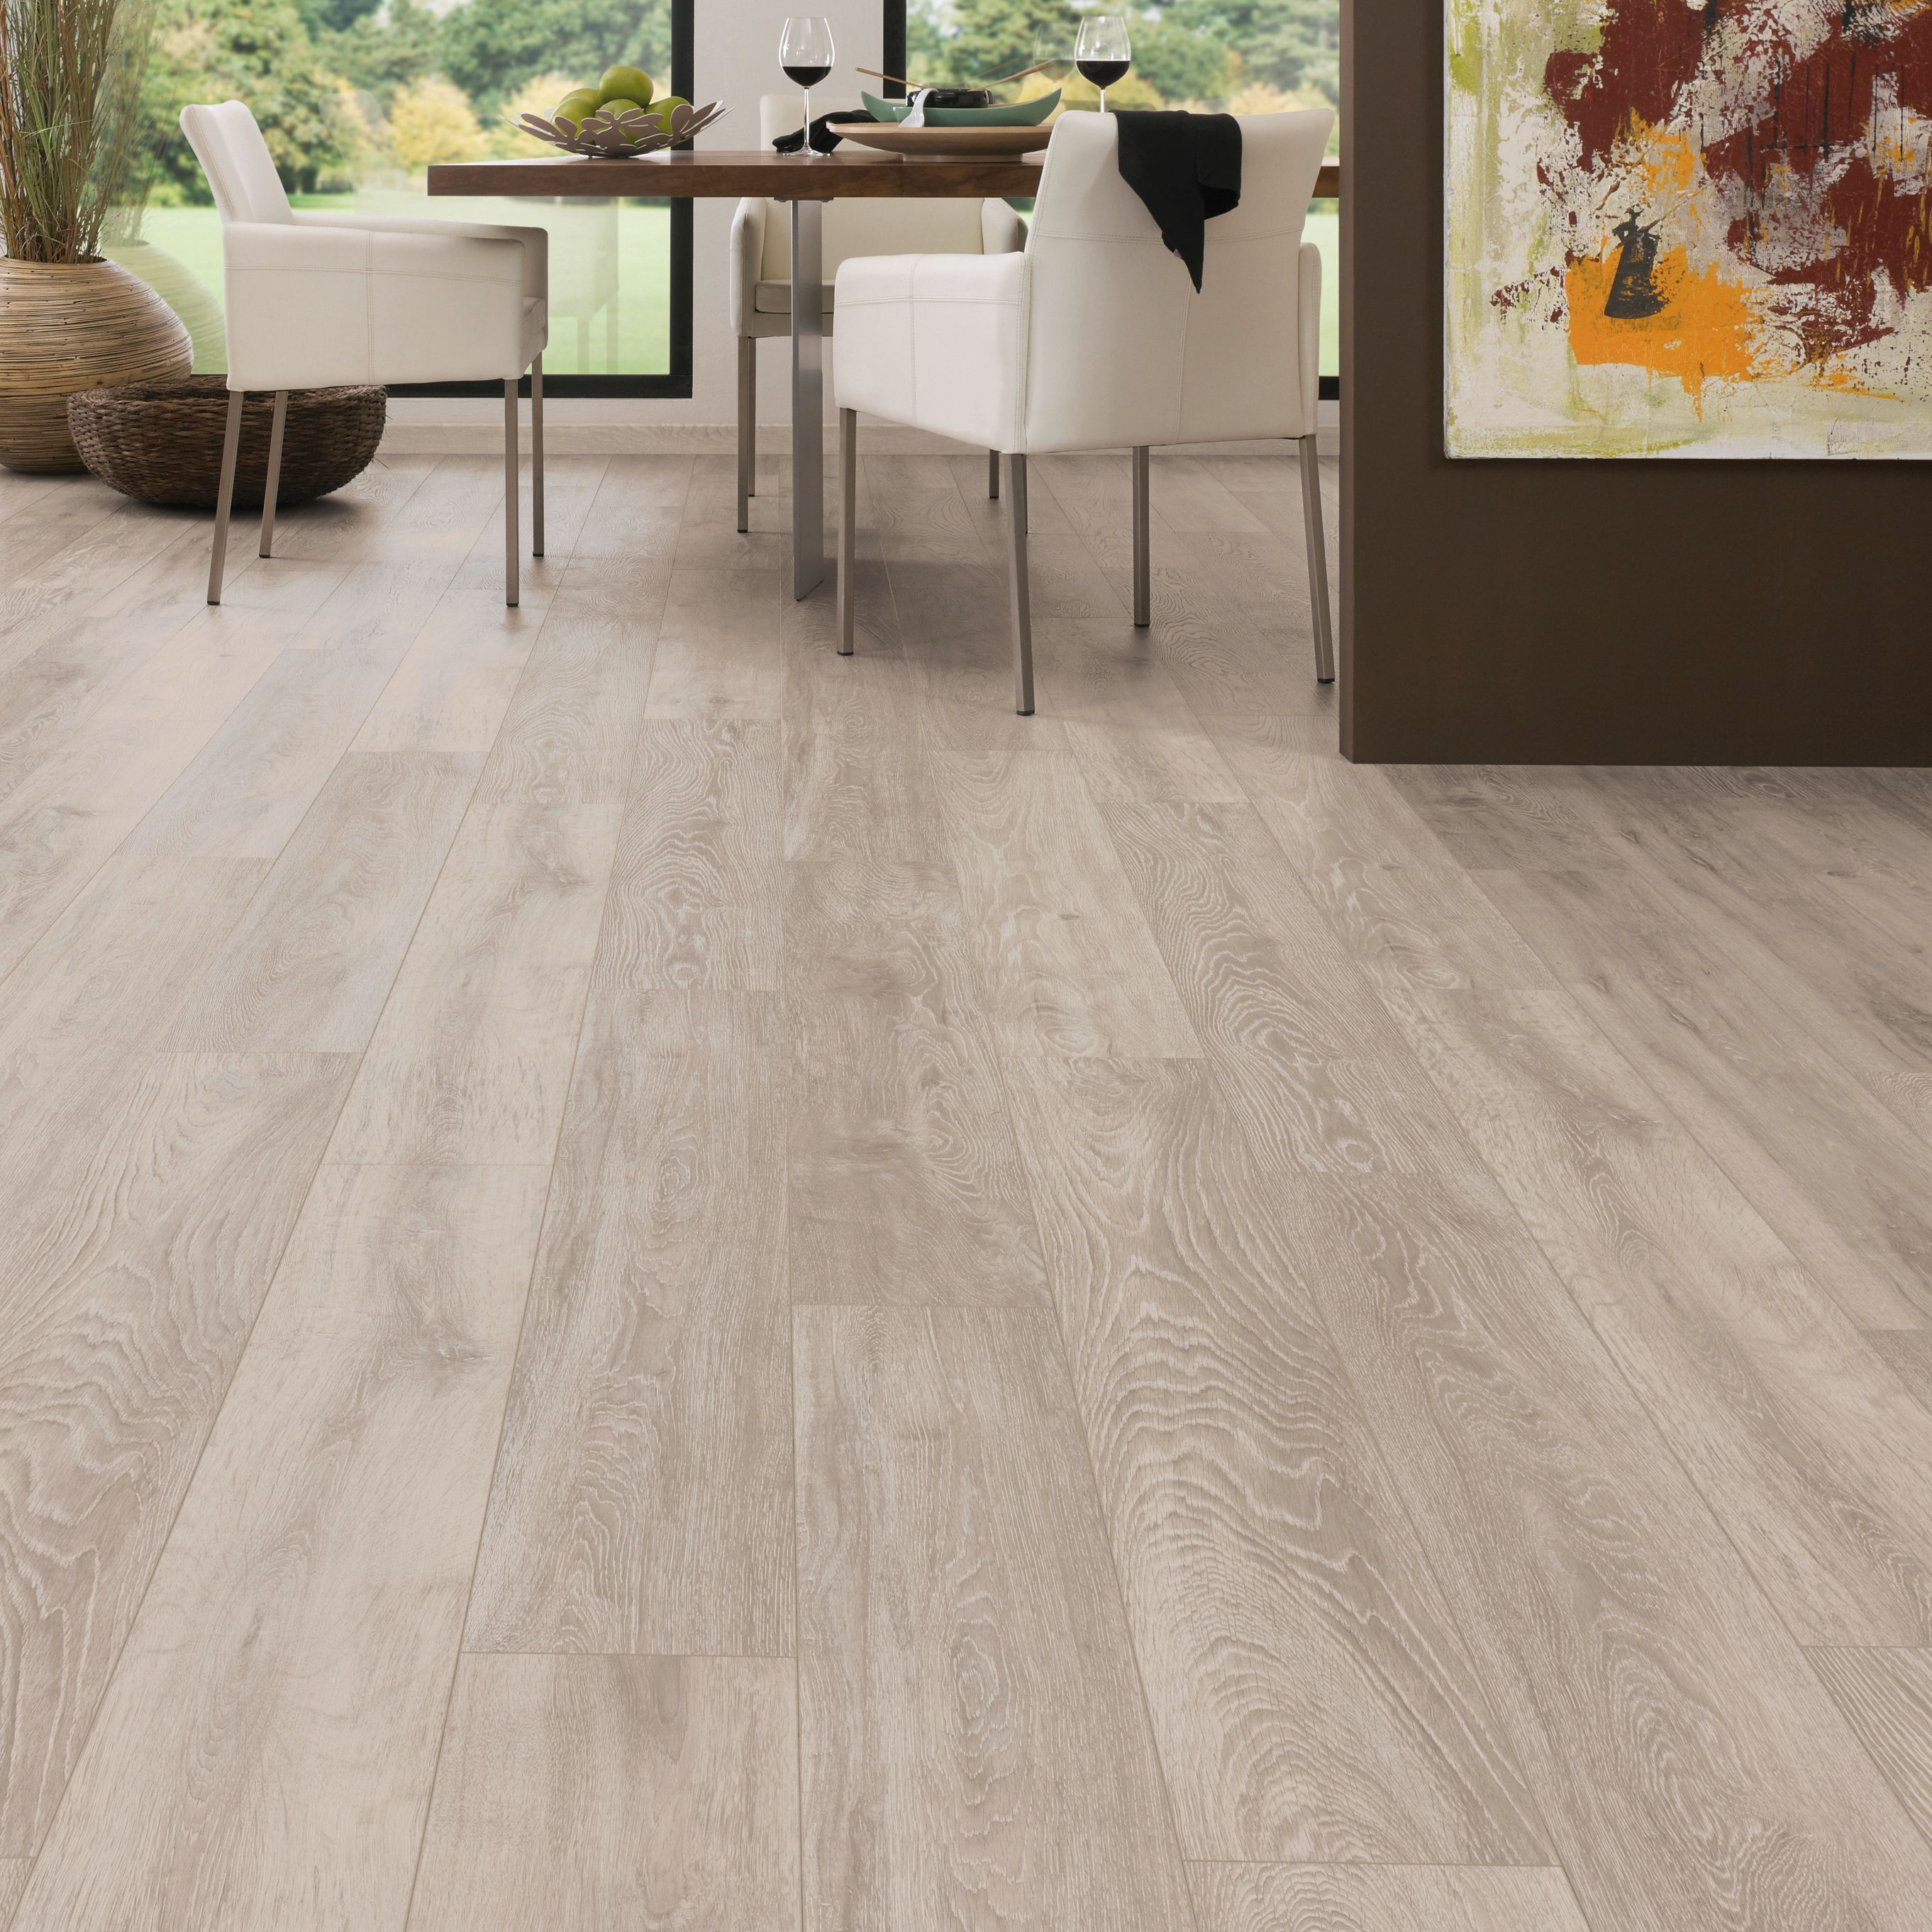 Amadeo Boulder Oak Effect Authentic Embossed Finish Laminate ...